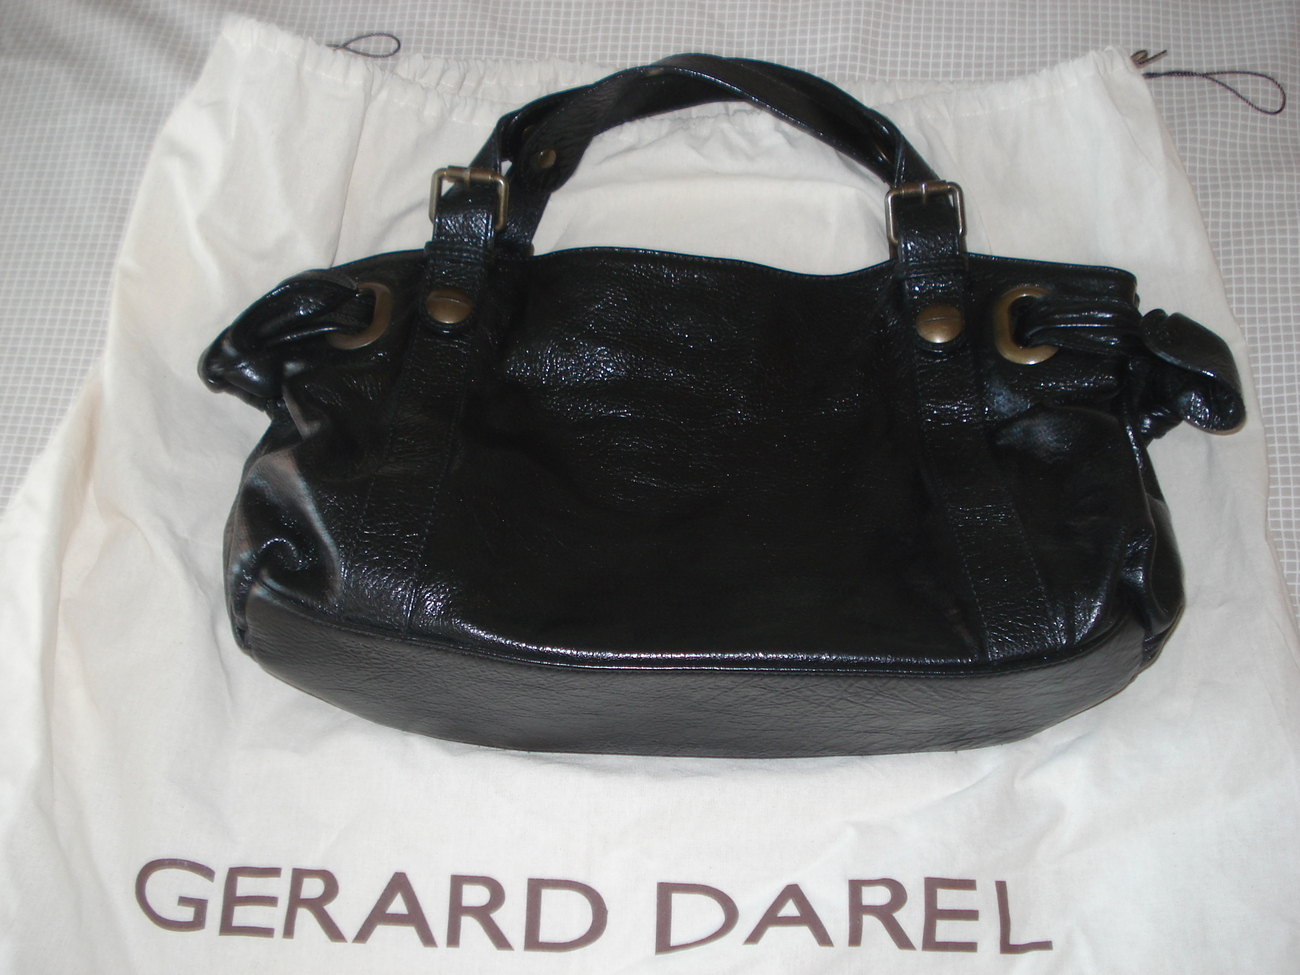 GERARD DAREL, BAHIA BAG